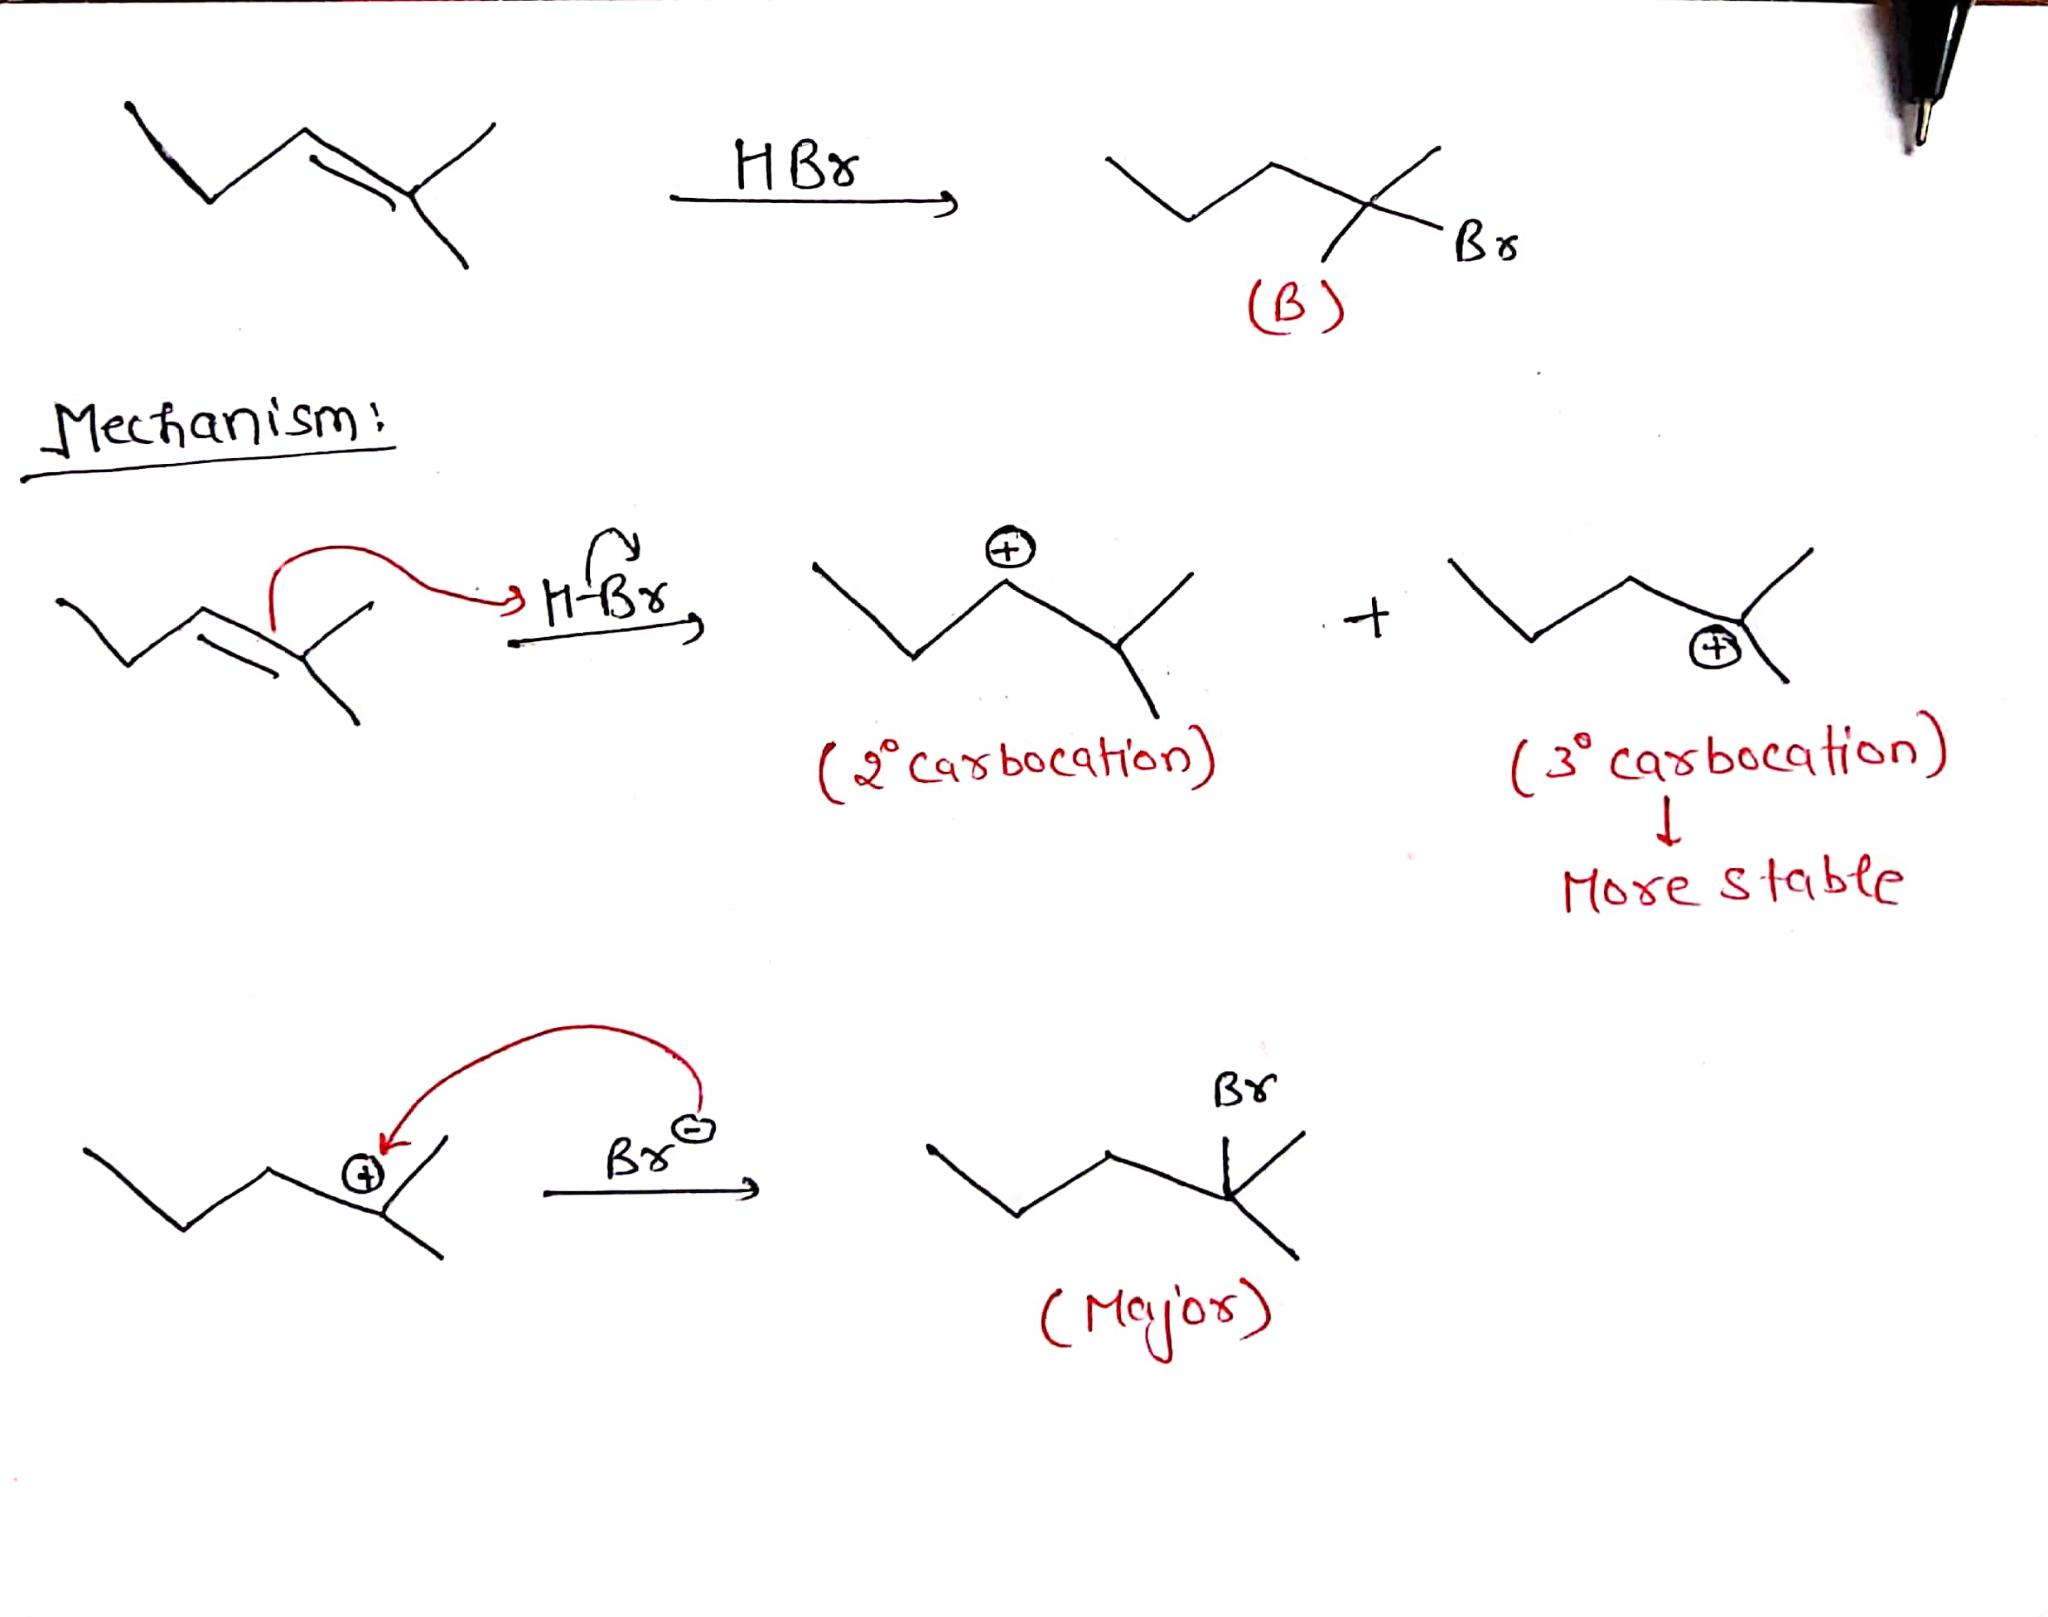 HBO XBO (B) Mechanism: H-Br (3 carsbocation) (3° carbocation) More stable Вх Byc wo (Major)